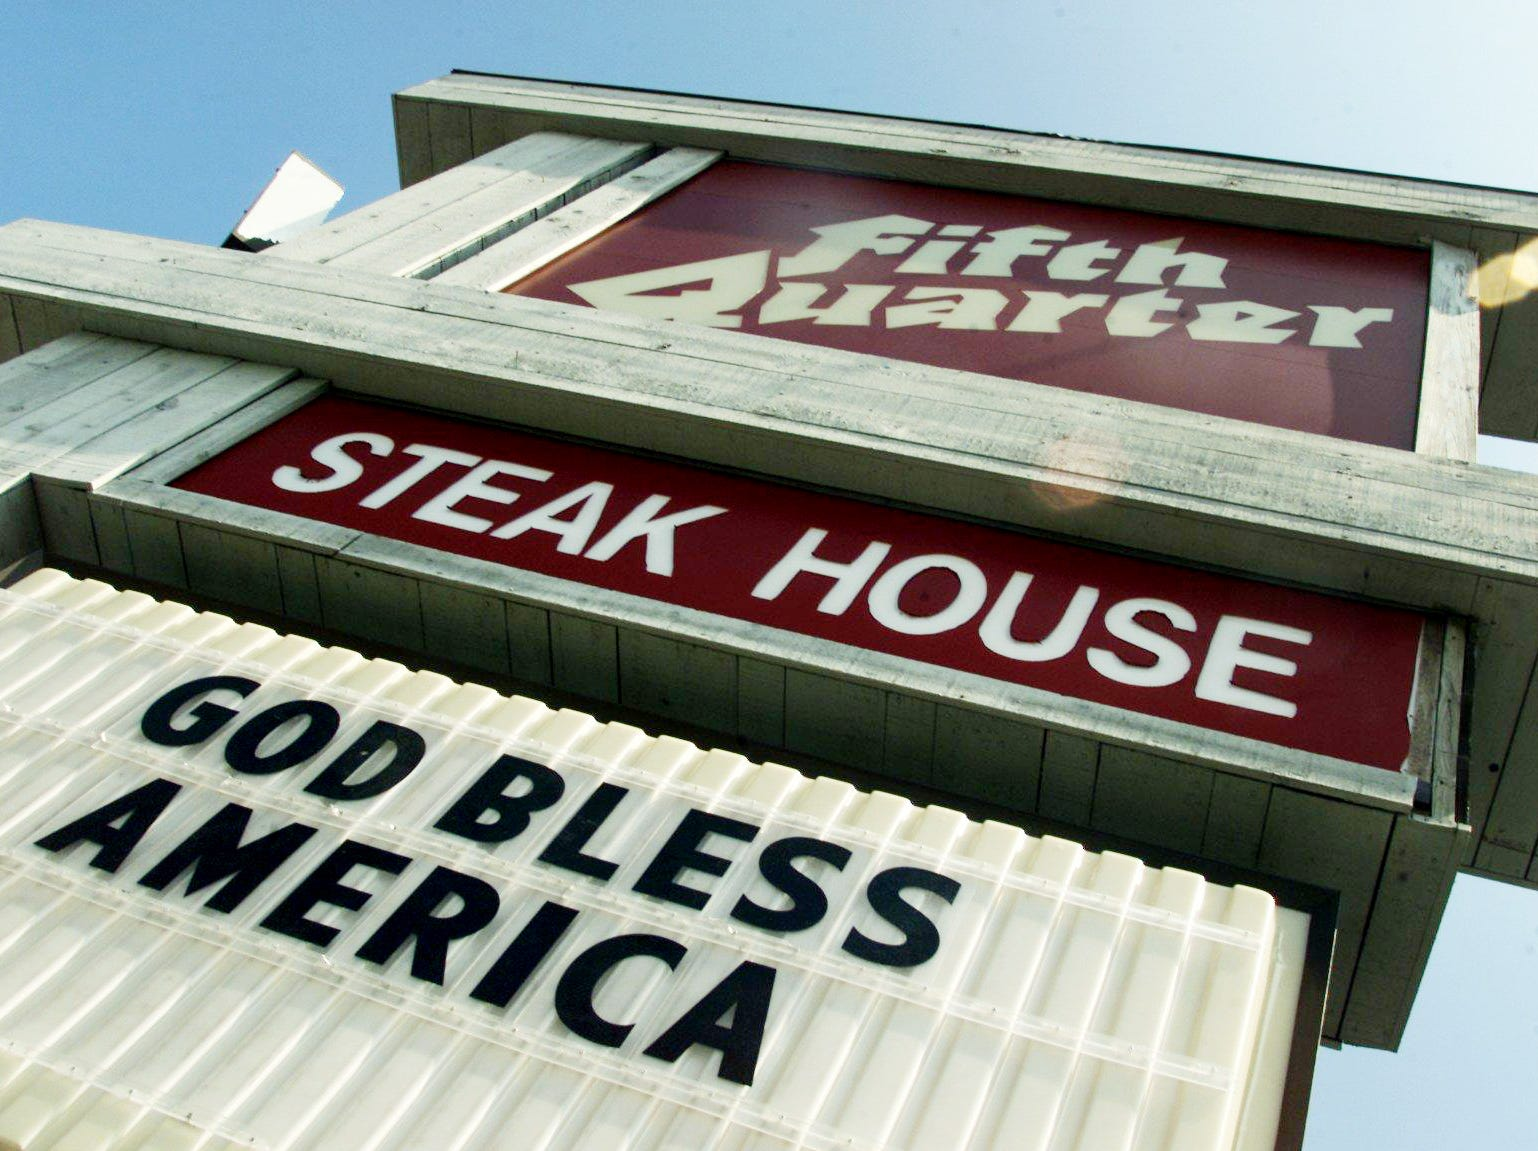 """A sign at the Fifth Quarter Steak House reads """"God Bless America"""" Sept. 12, 2001, a popular slogan for numerous businesses along Murfreesboro Road after the World Trade Center aftermath."""